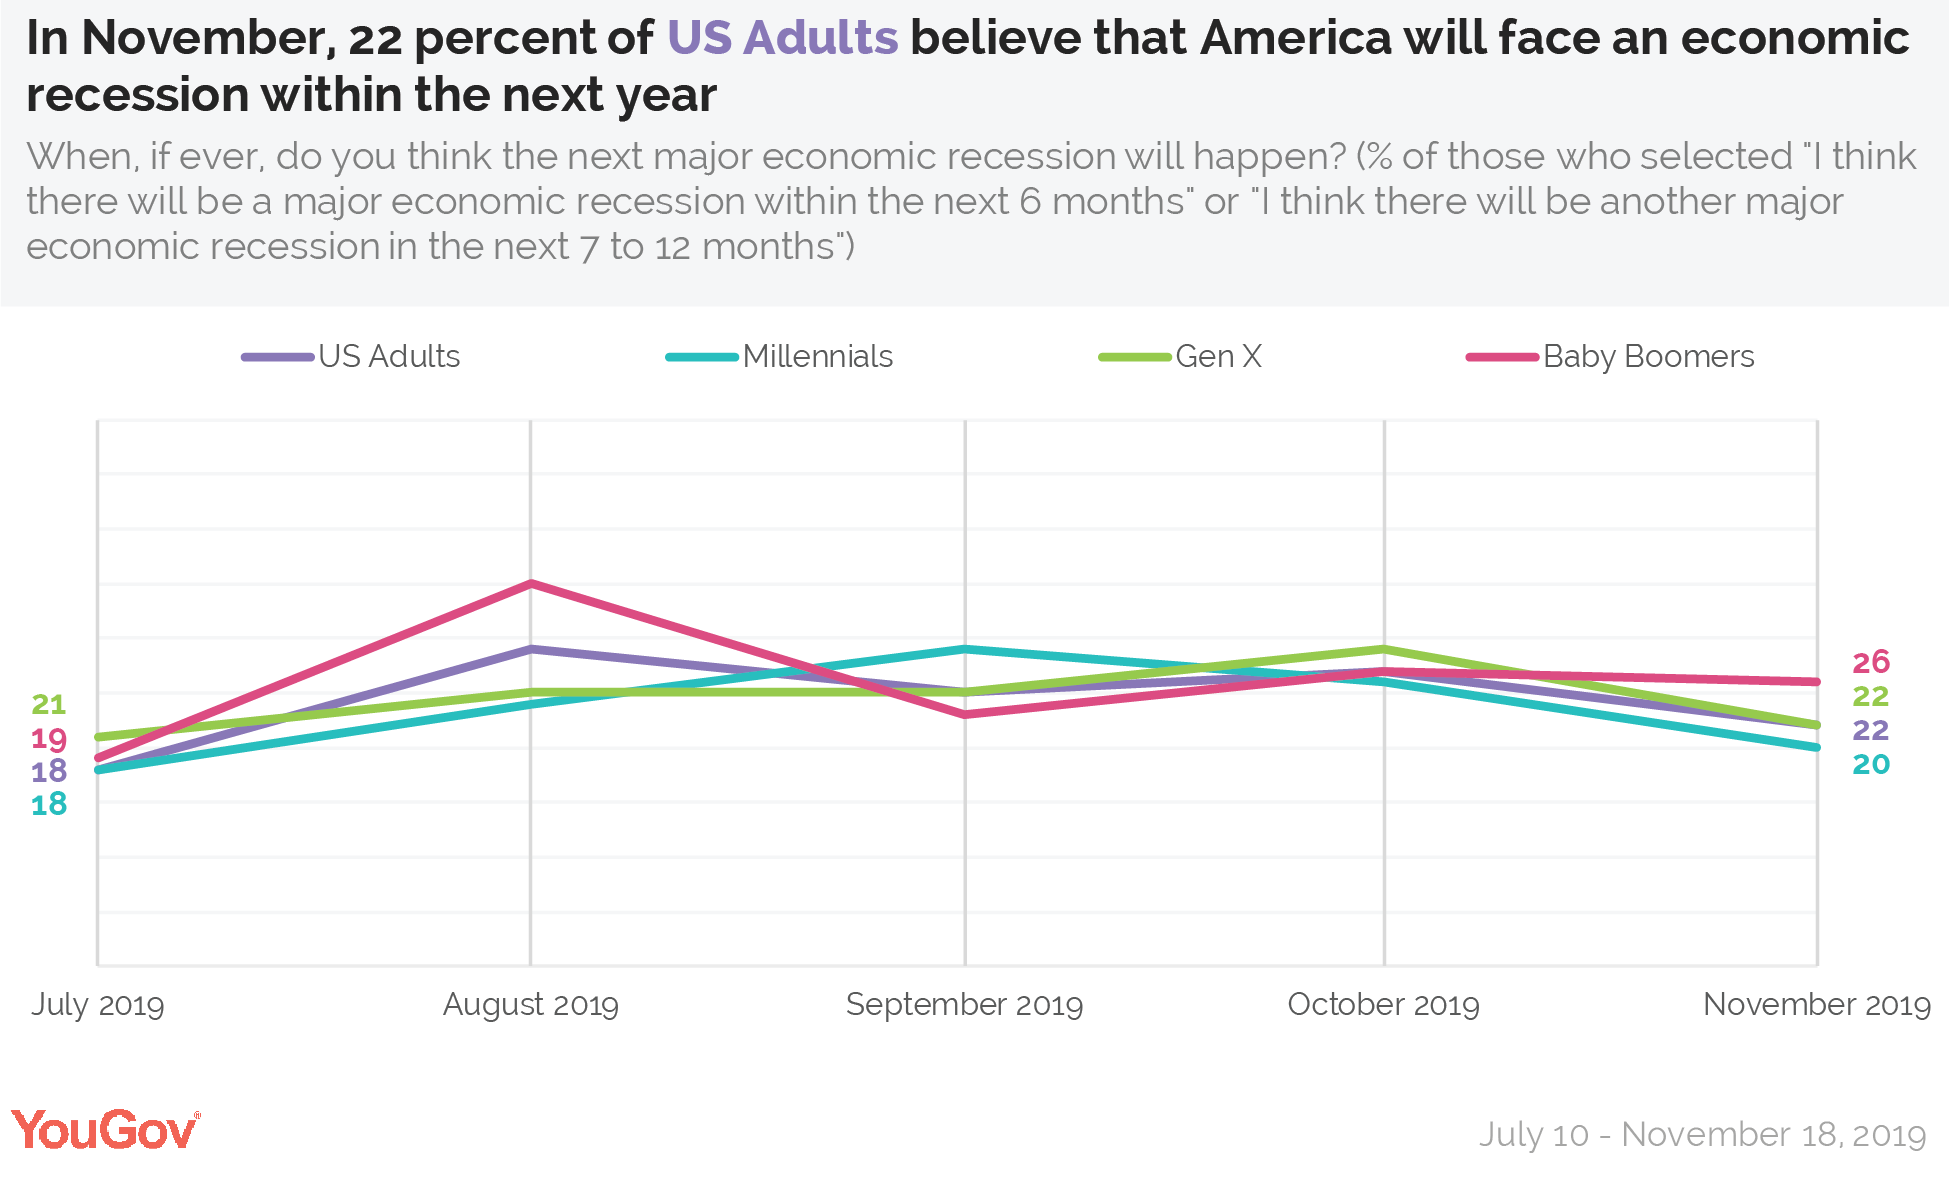 In November, 22 percent of US Adults believe that America will face an economic recession within the next year